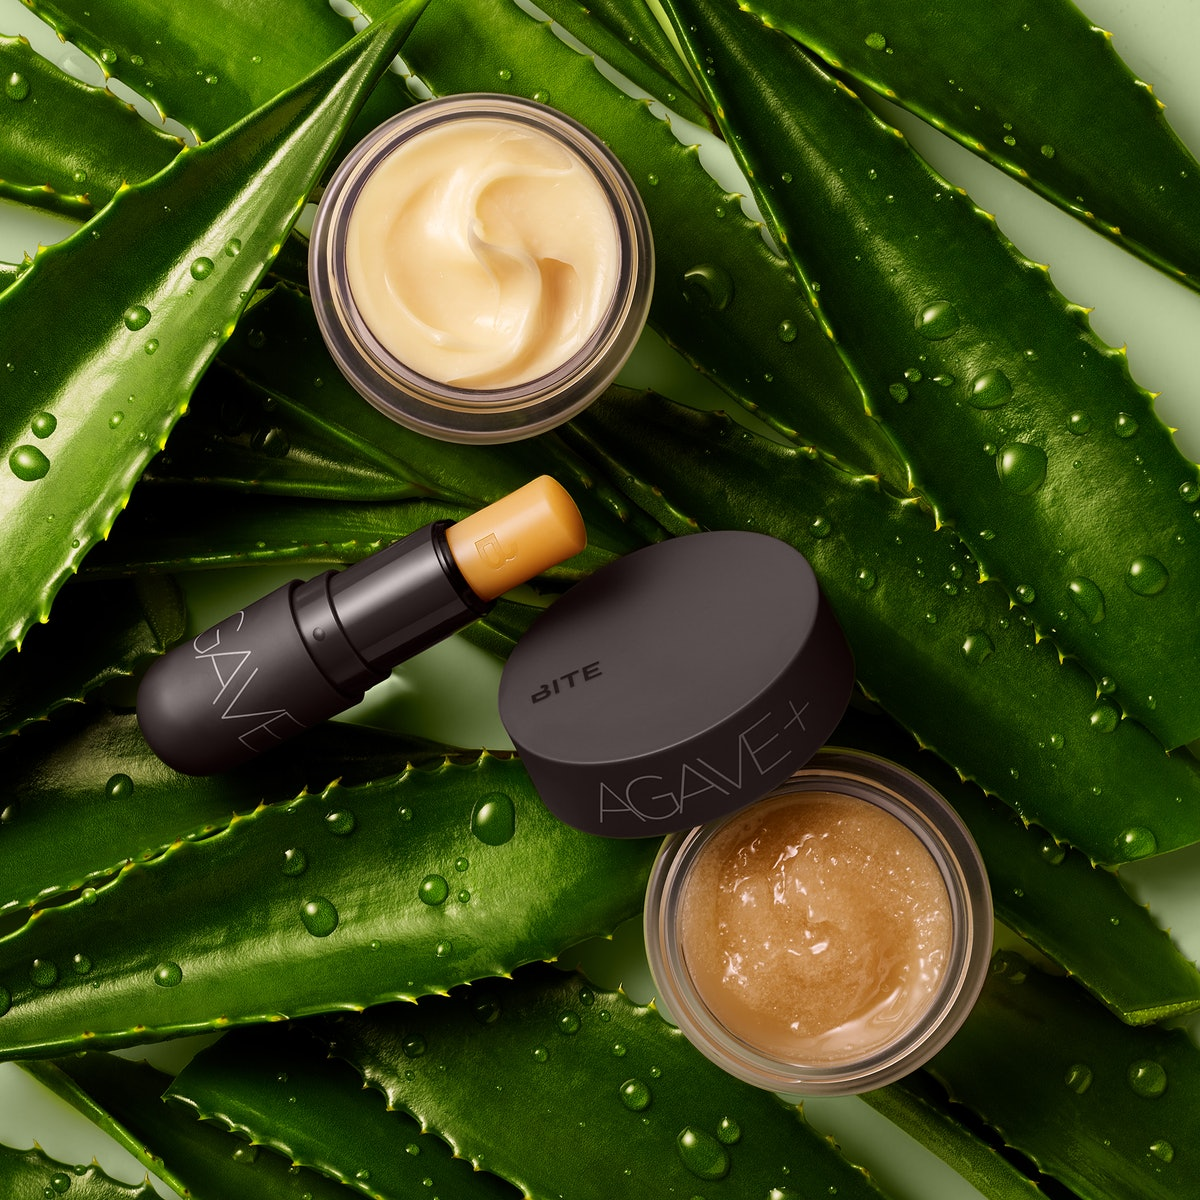 Bite Beauty's Agave Collection Is Expanding To Include A Scrub, A Mask & A Daytime Balm